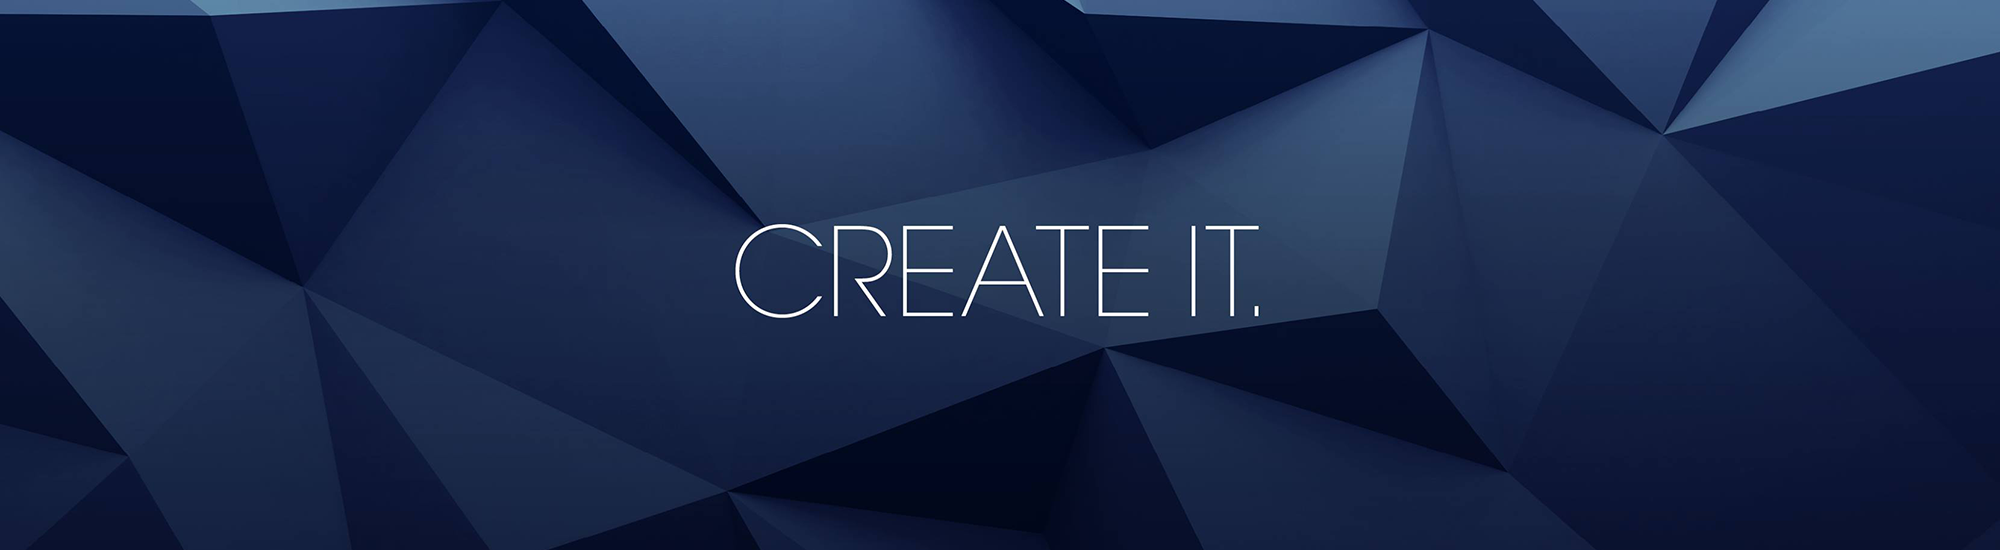 CREATE IT Banner